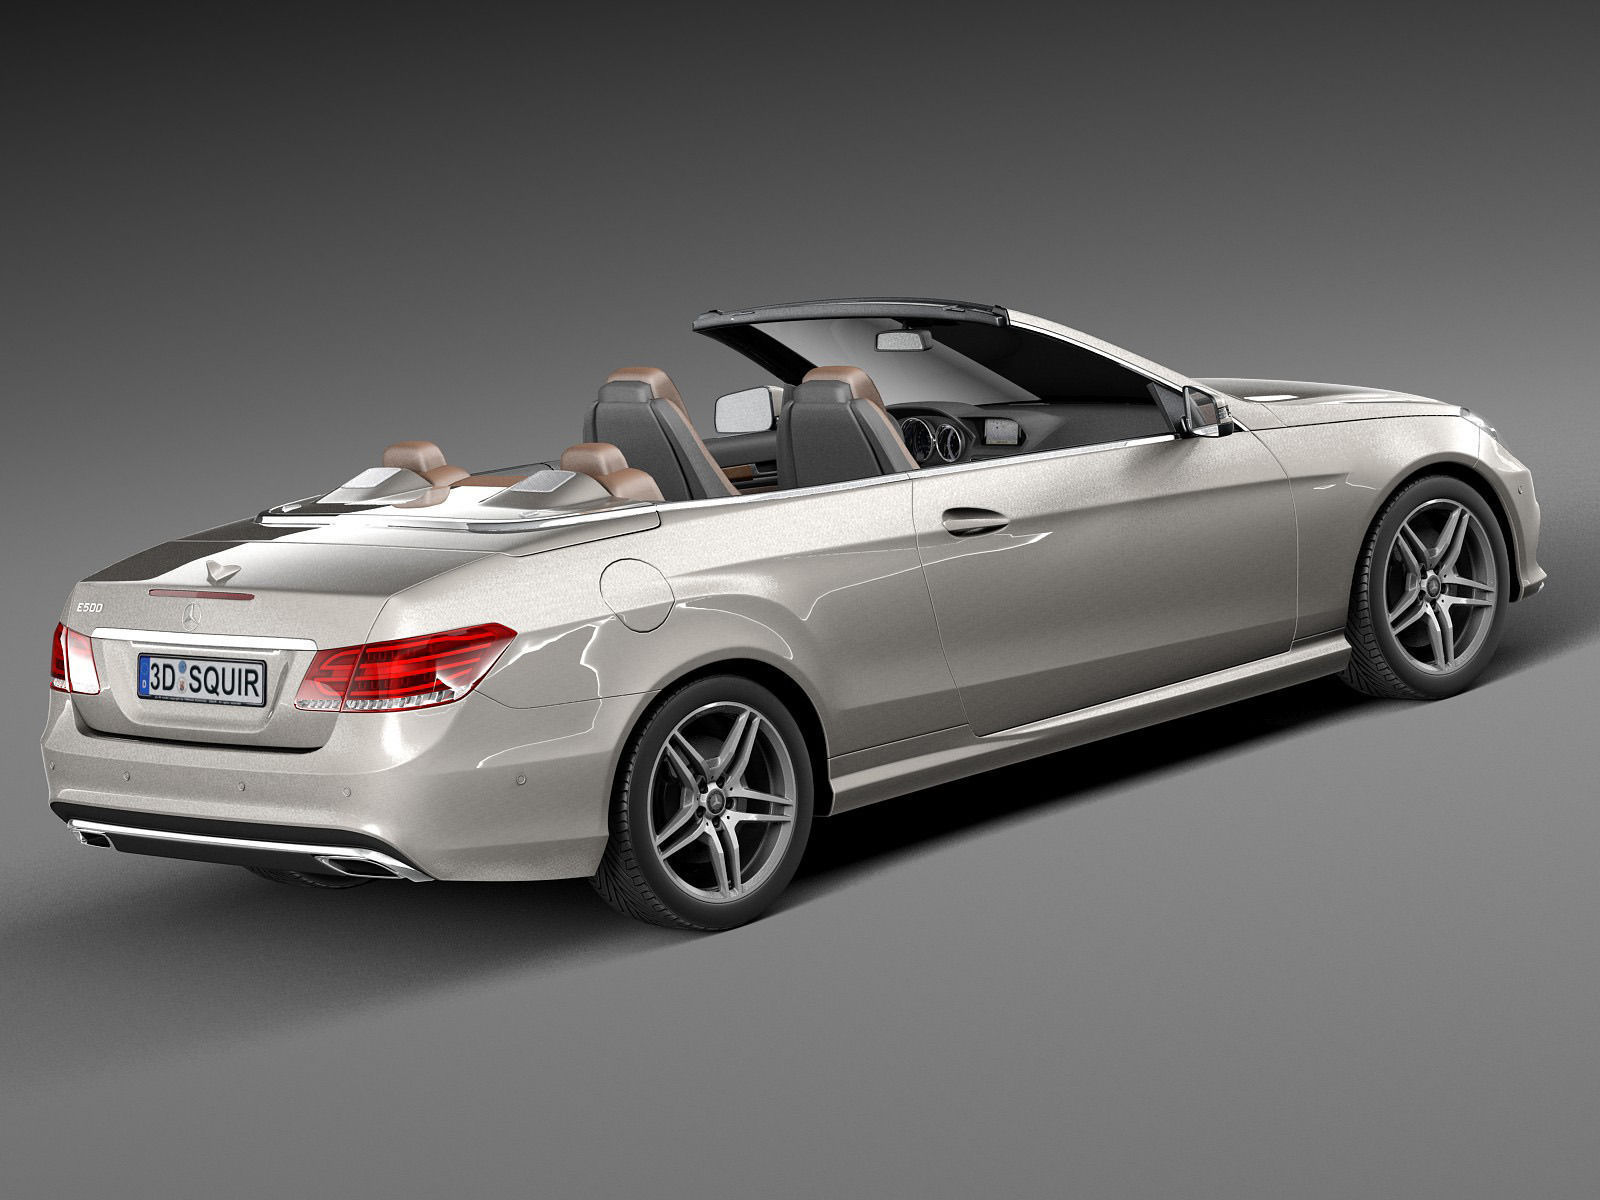 Mercedes benz e class amg convertible 2015 3d model max for Mercedes benz e class models